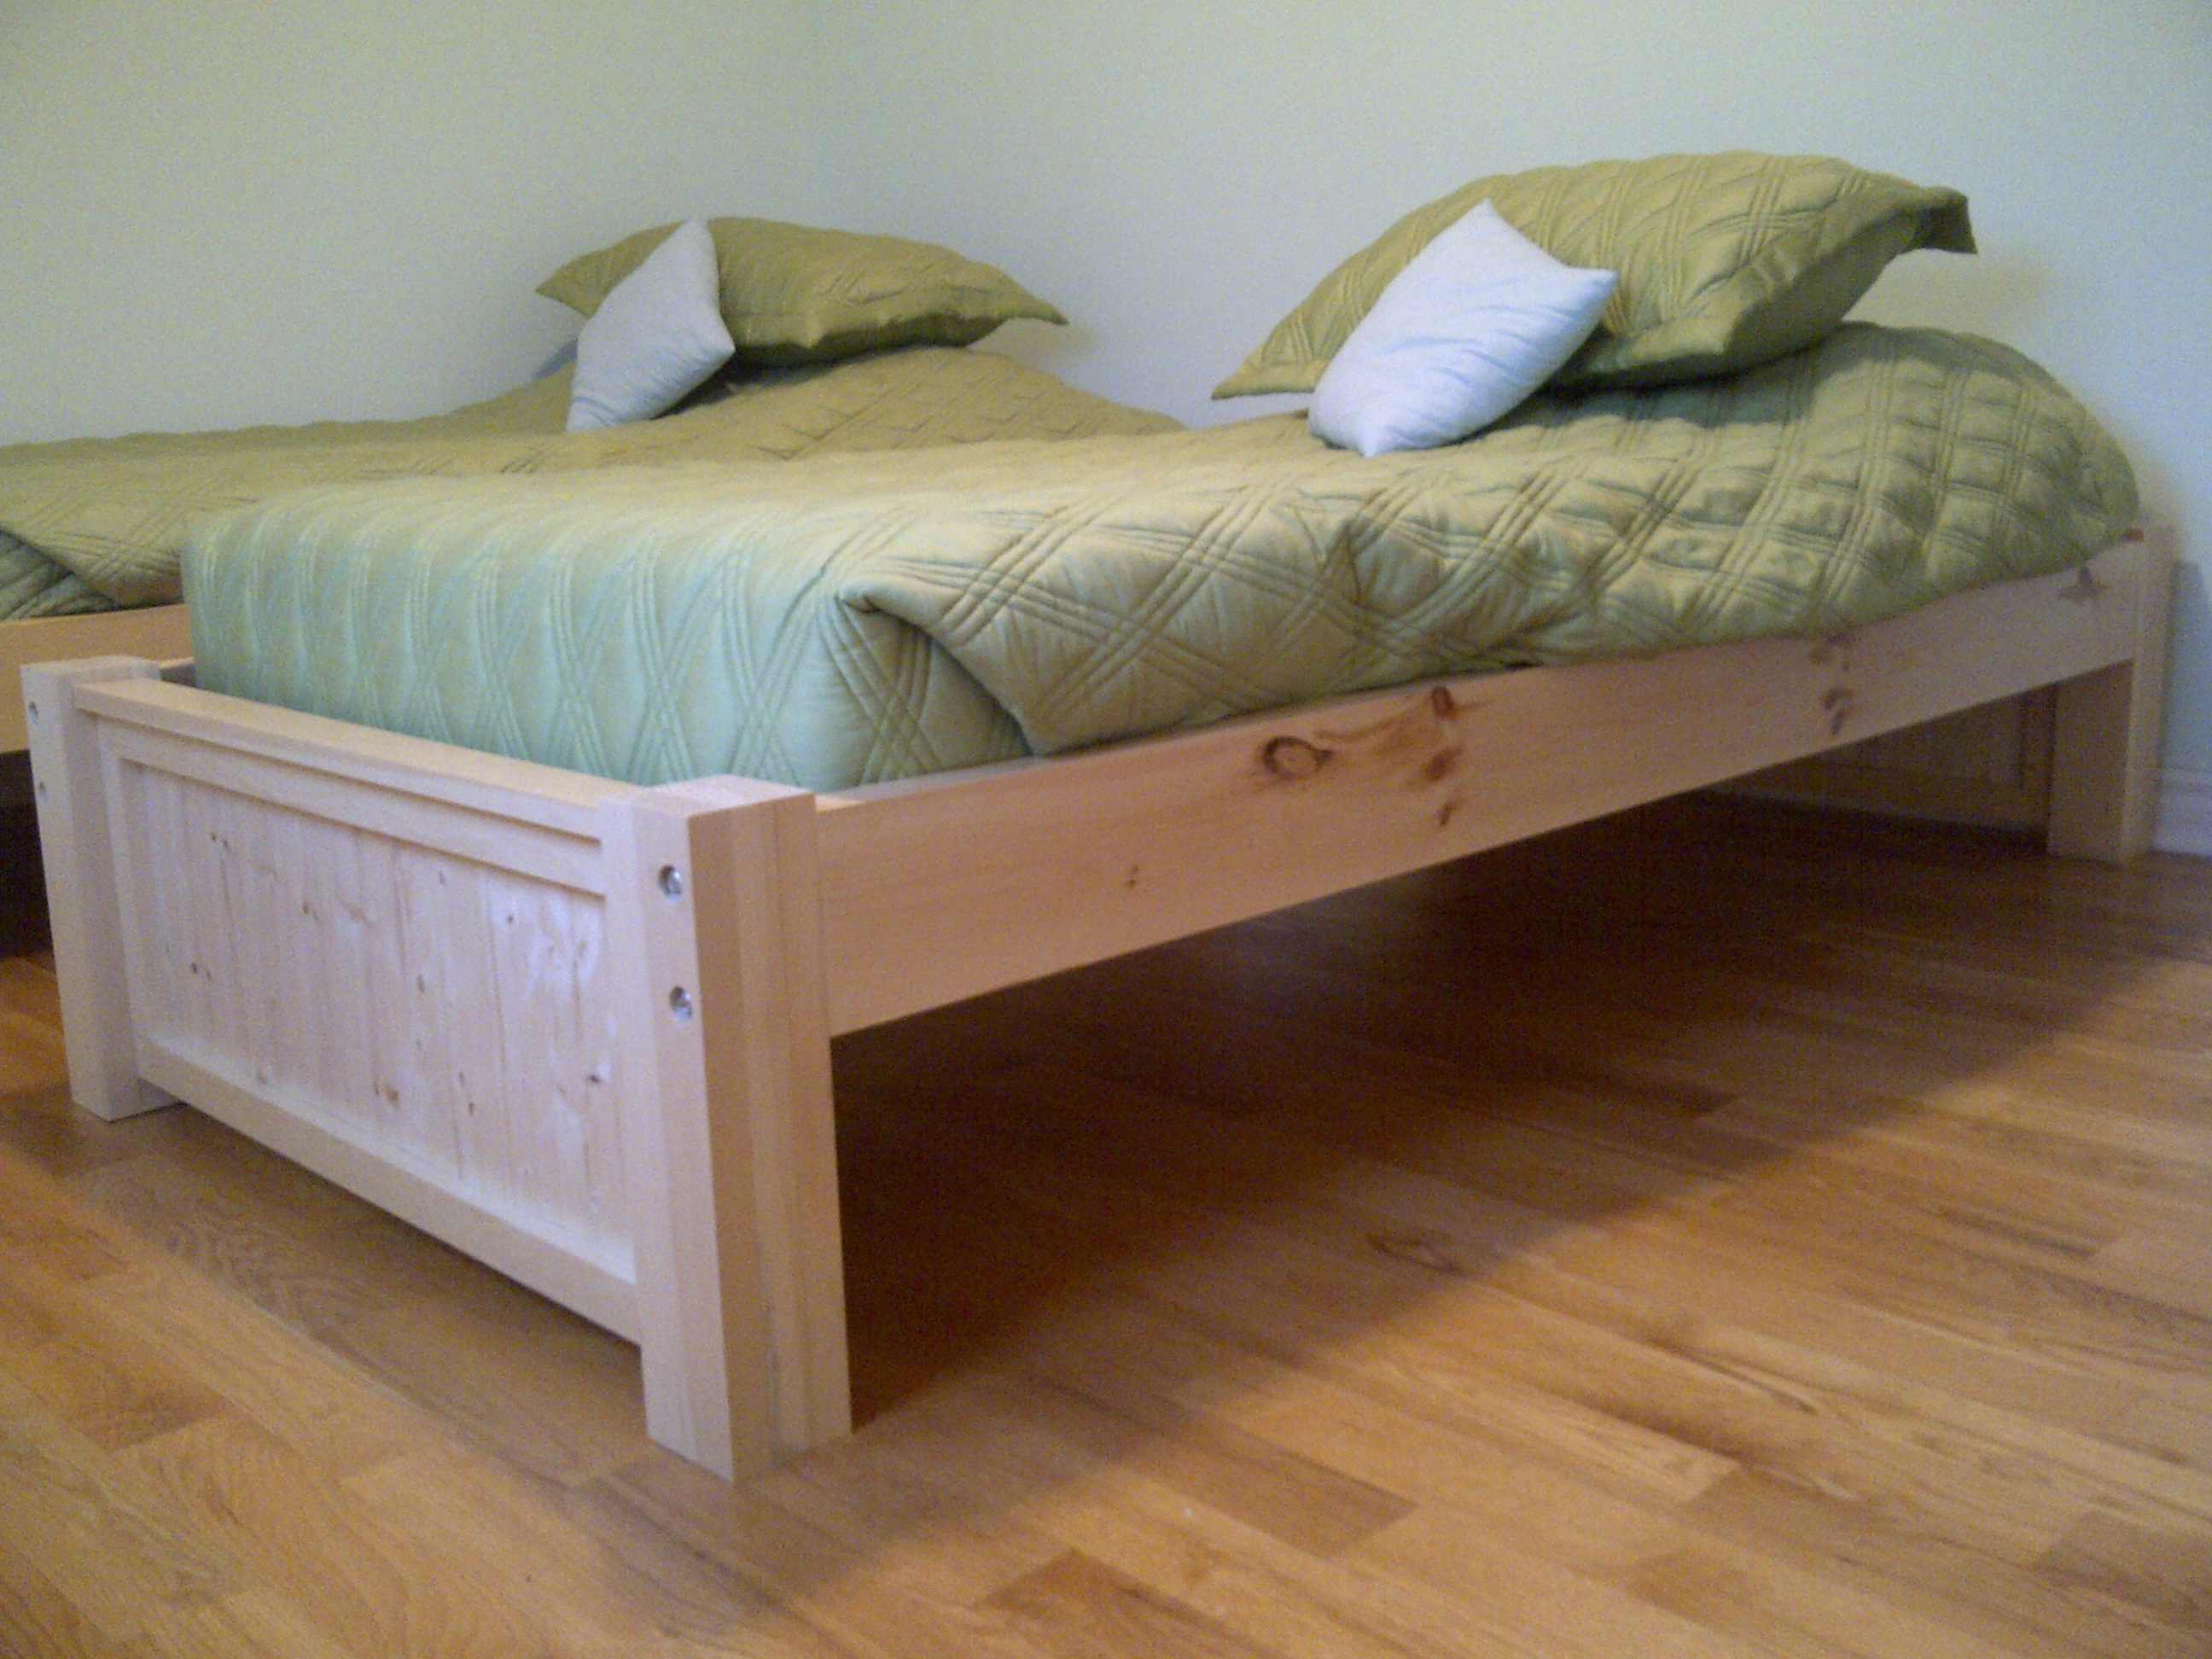 Easy build platform bed frame joy studio design gallery for Do it yourself blueprints